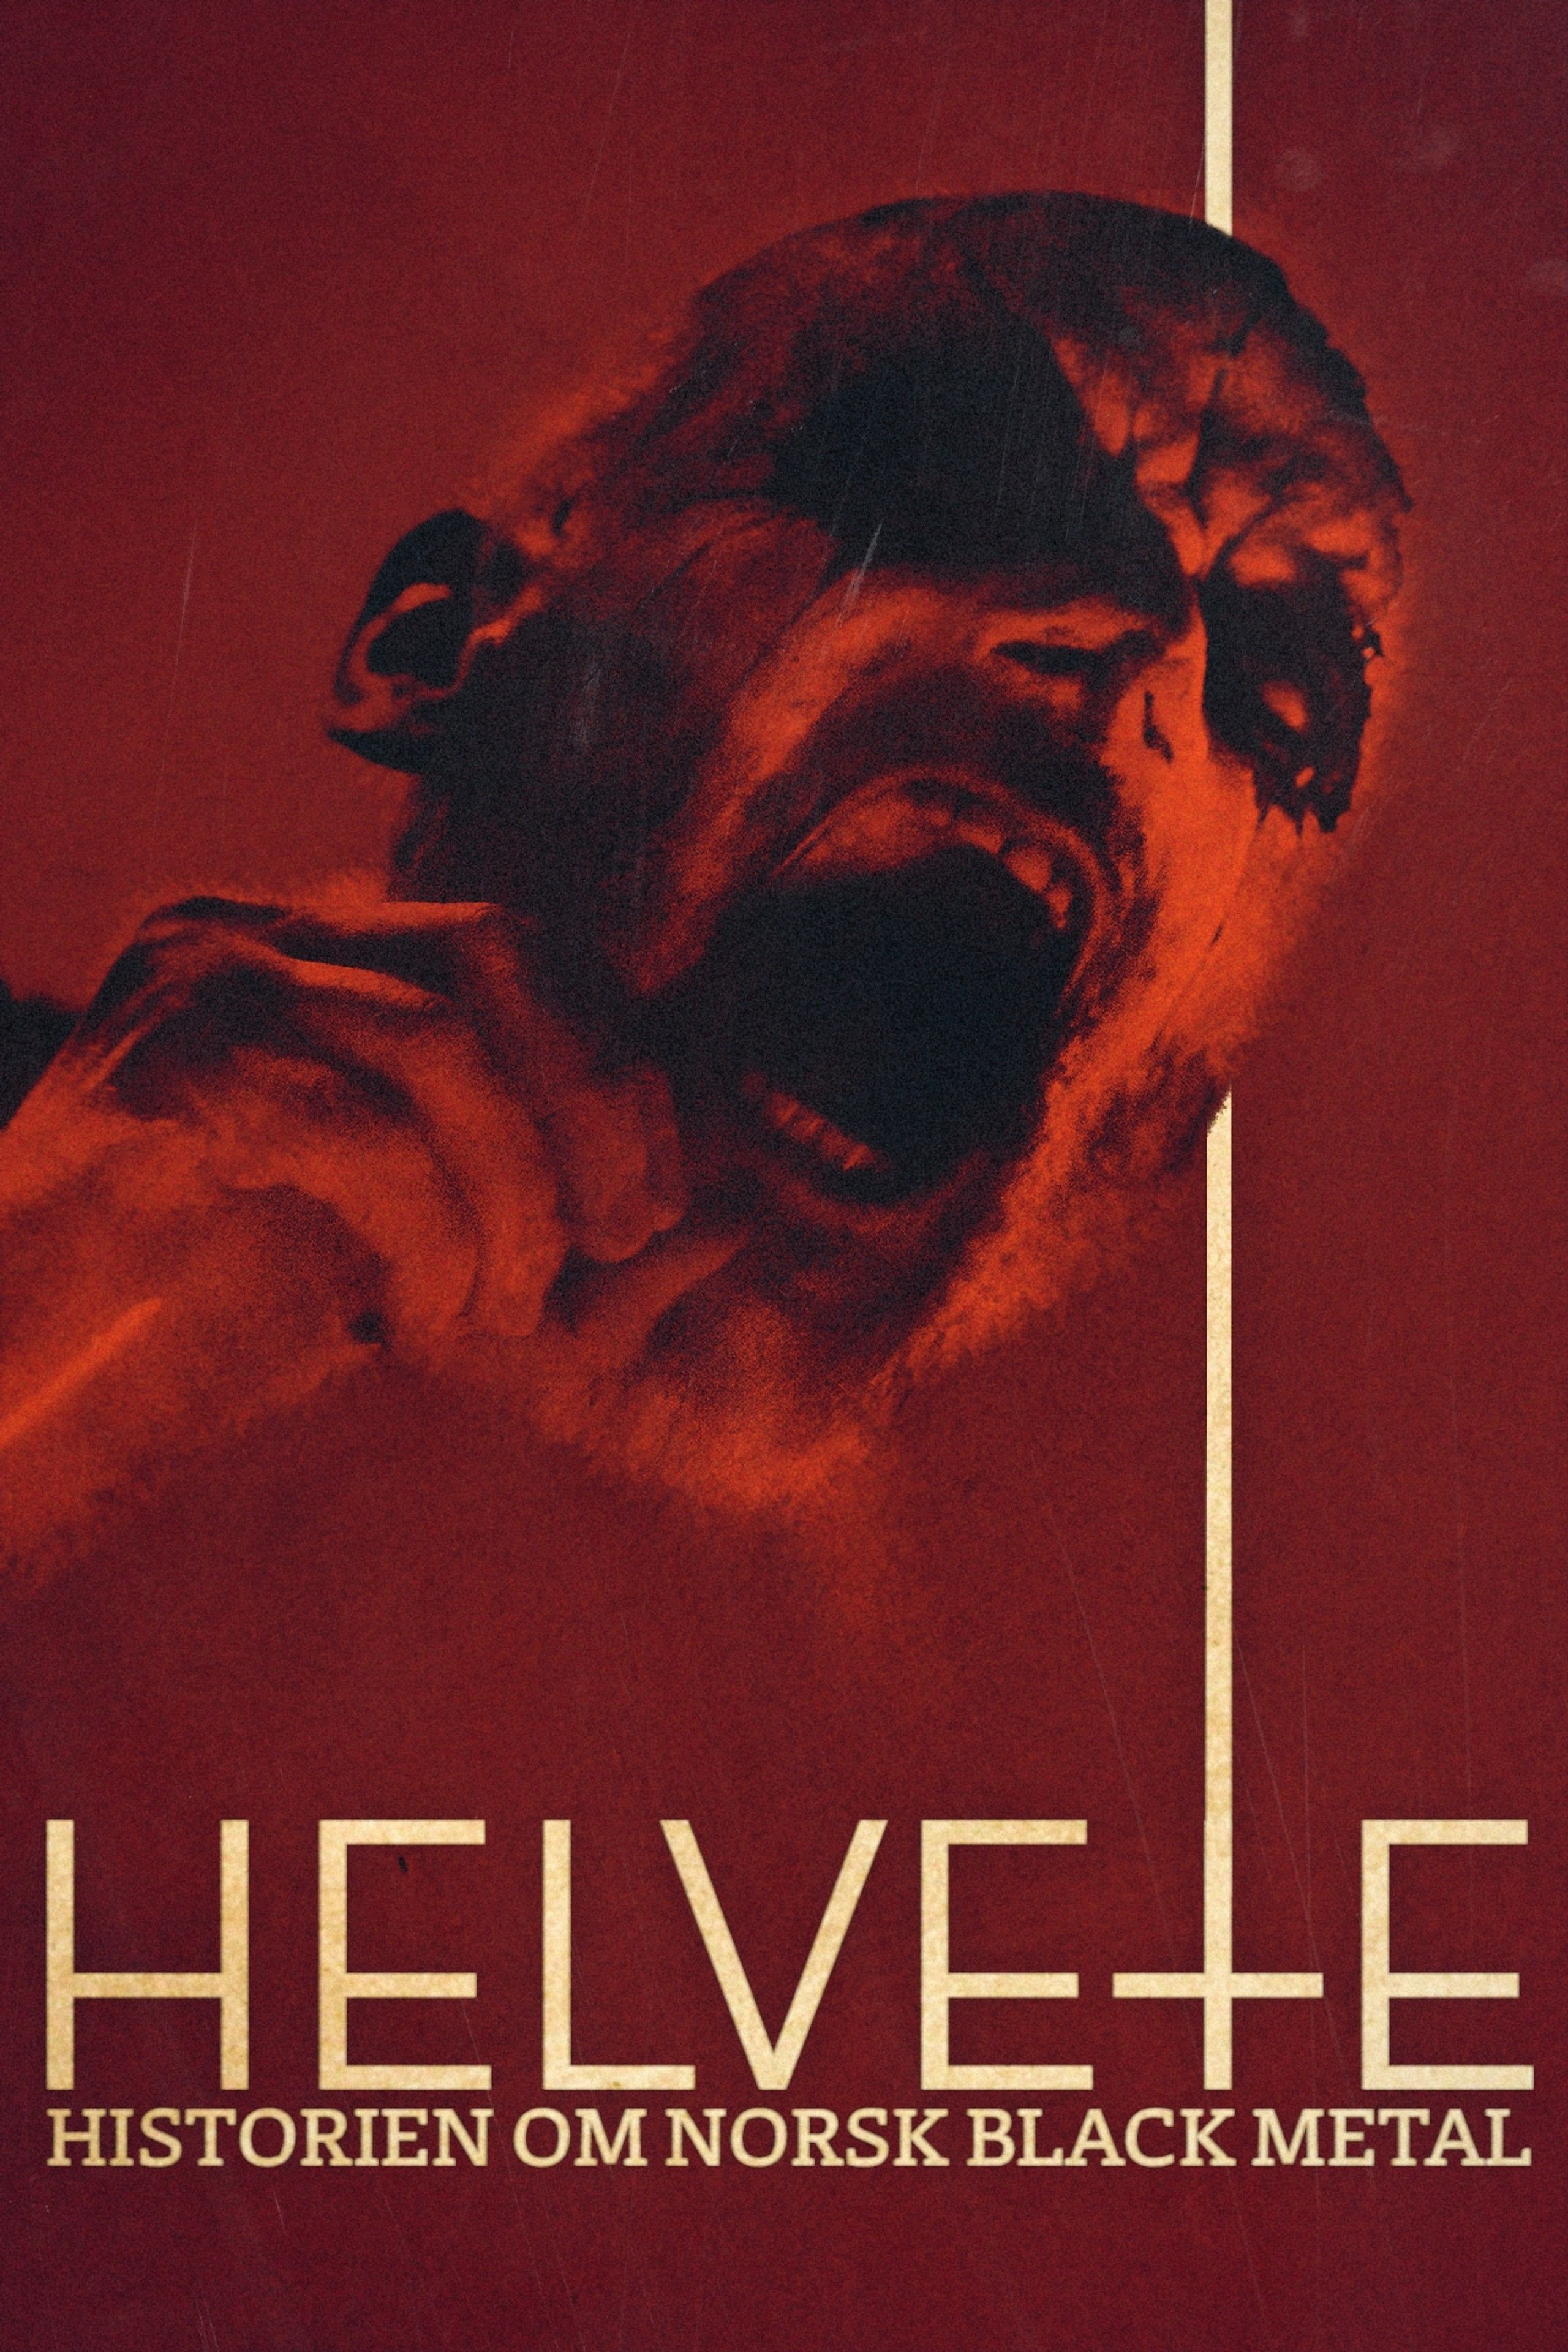 """Helvete"": el nuevo y brutal documental Noruego de Black Metal (Link)"